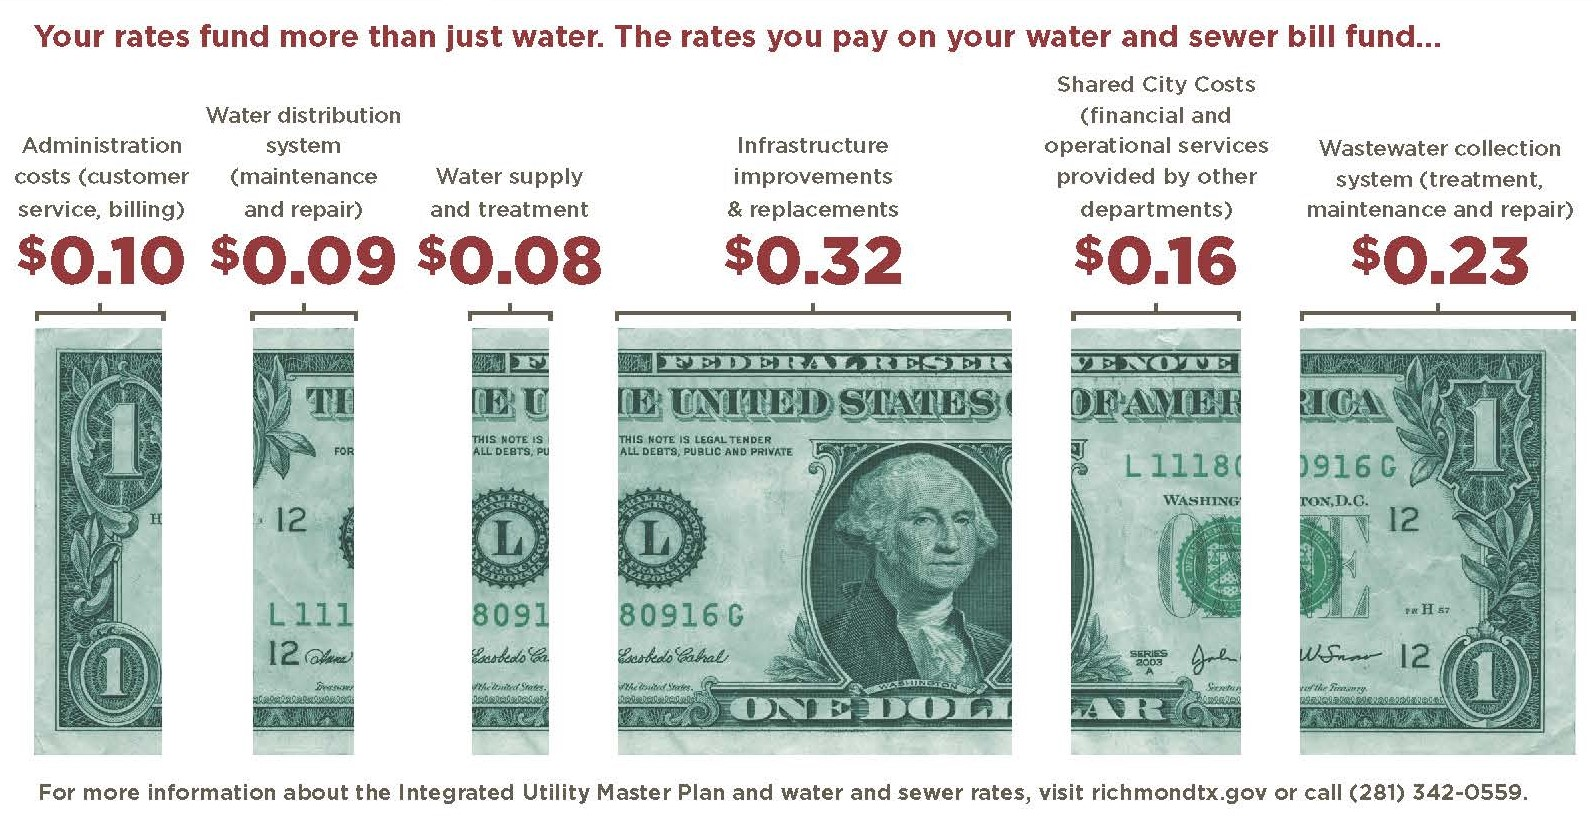 Richmond_Infographic dollar breakdown for Integrated Utility